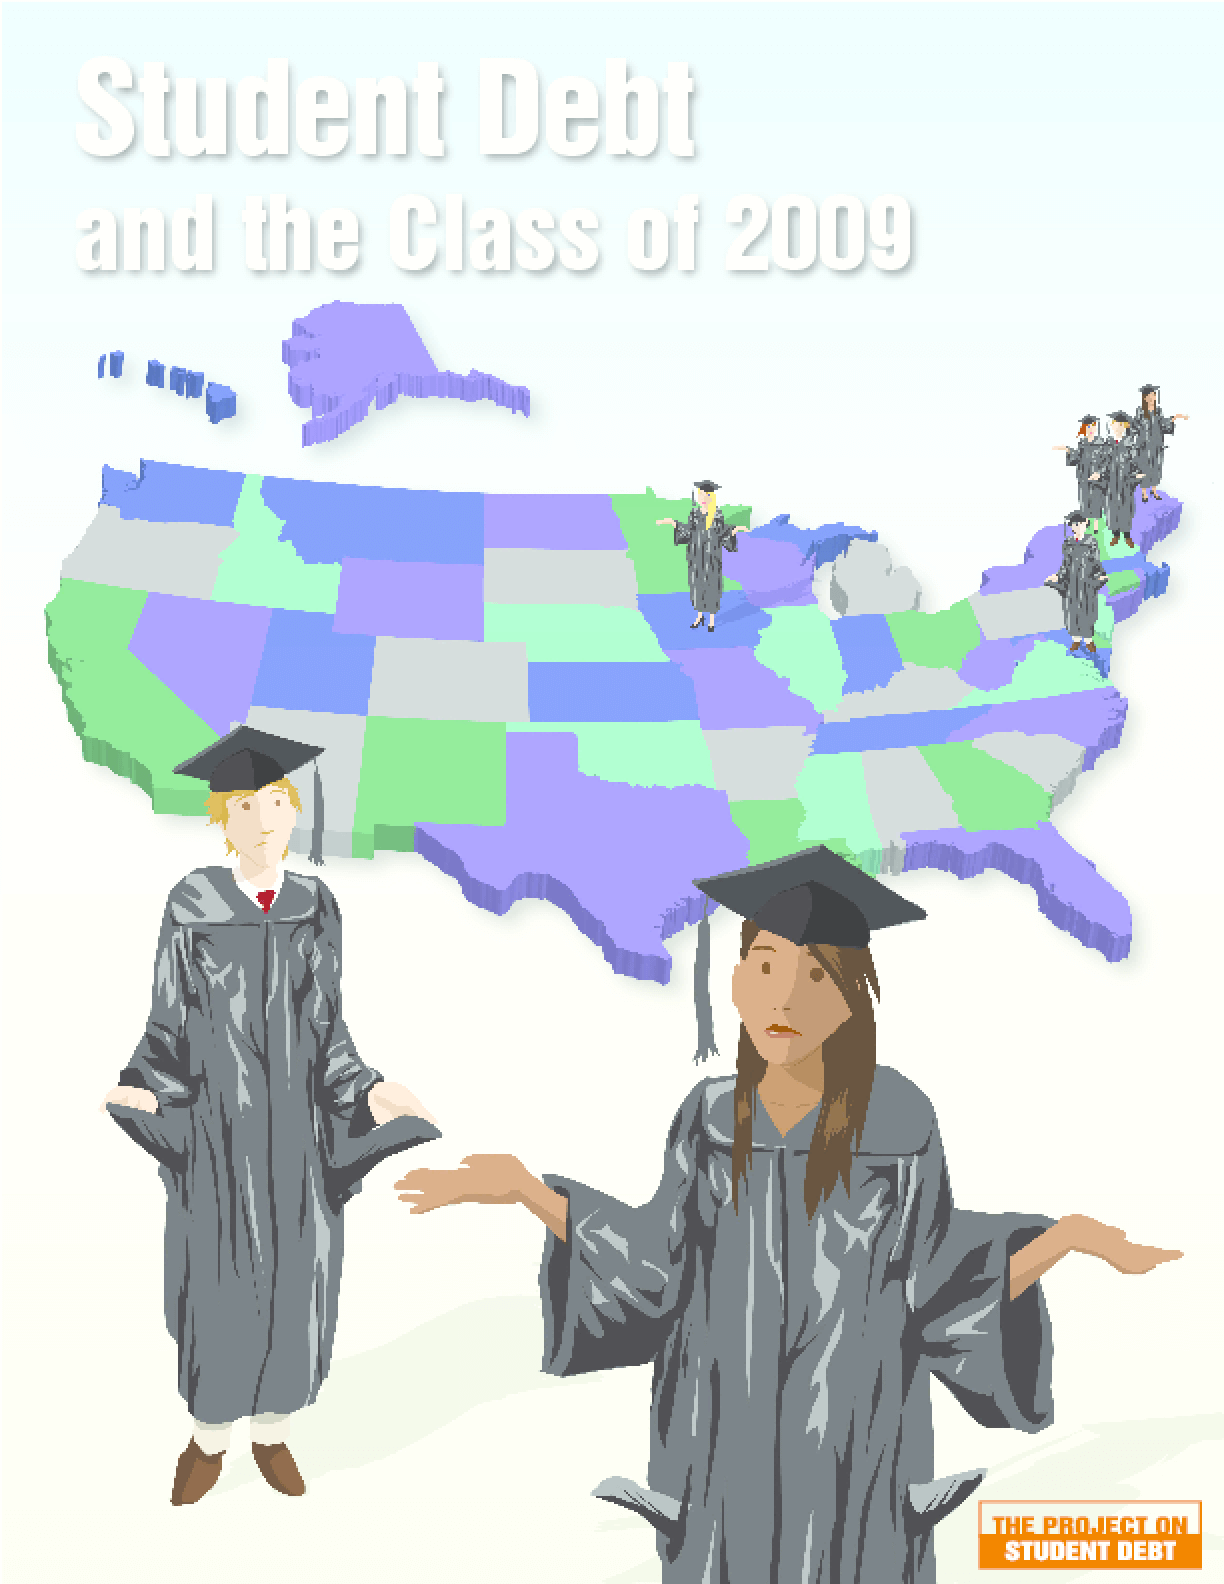 Student Debt and the Class of 2009